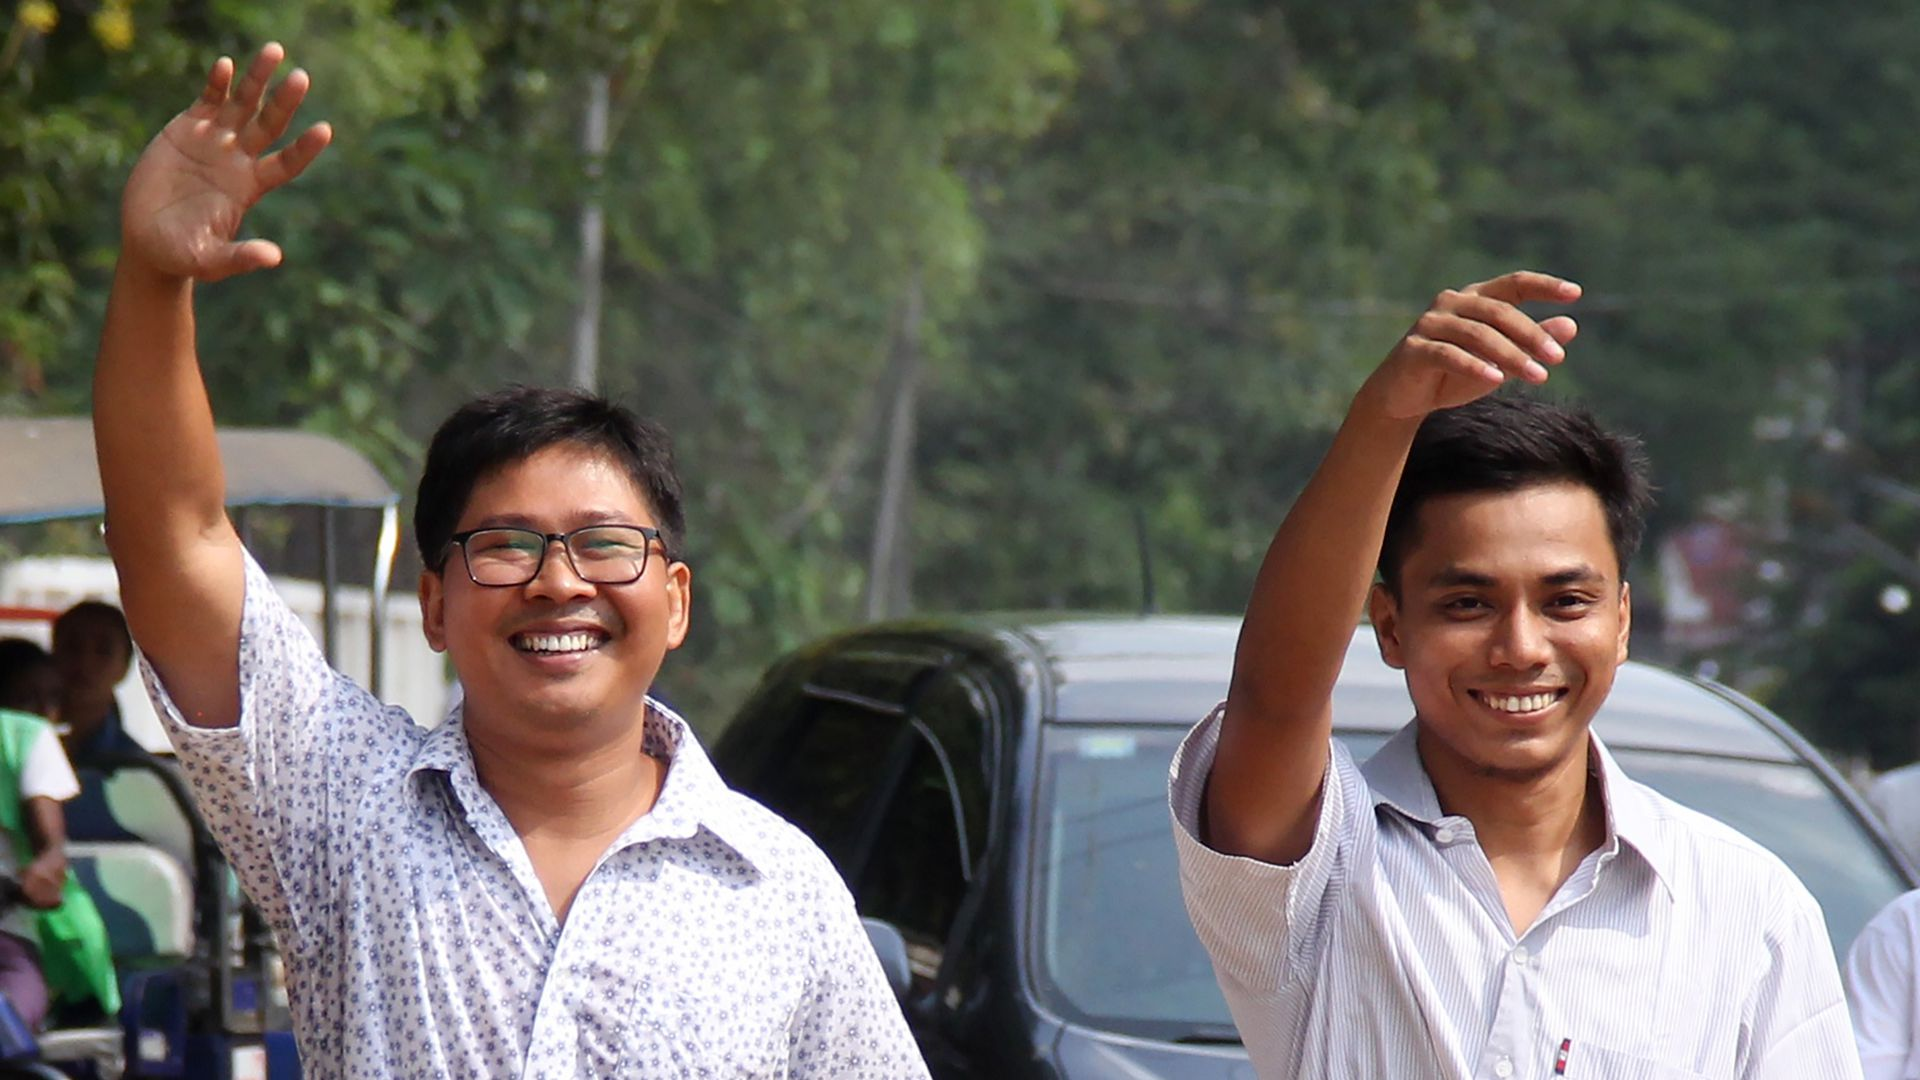 Reuters journalists Wa Lone (L) and Kyaw Soe Oo gesture outside Insein prison after being freed in a presidential amnesty in Yangon on Tuesday local time.